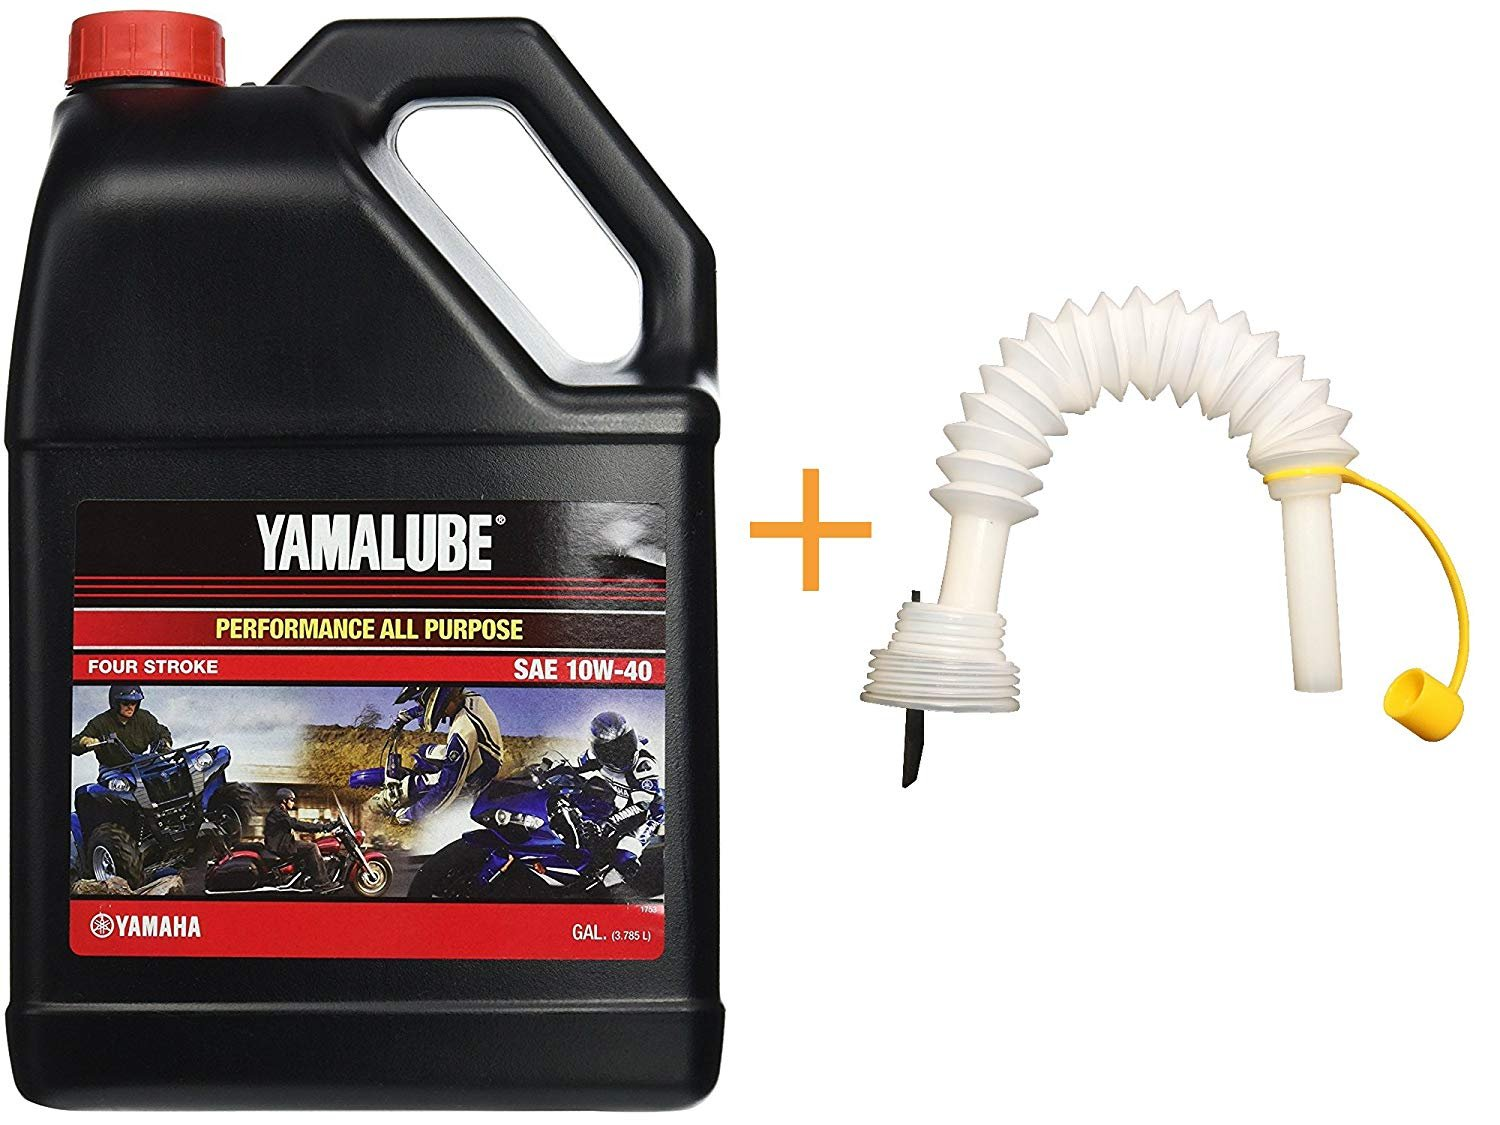 YamaLube All Purpose 4 Four Stroke Oil 10w-40 1 Gallon PLUS Shinespout